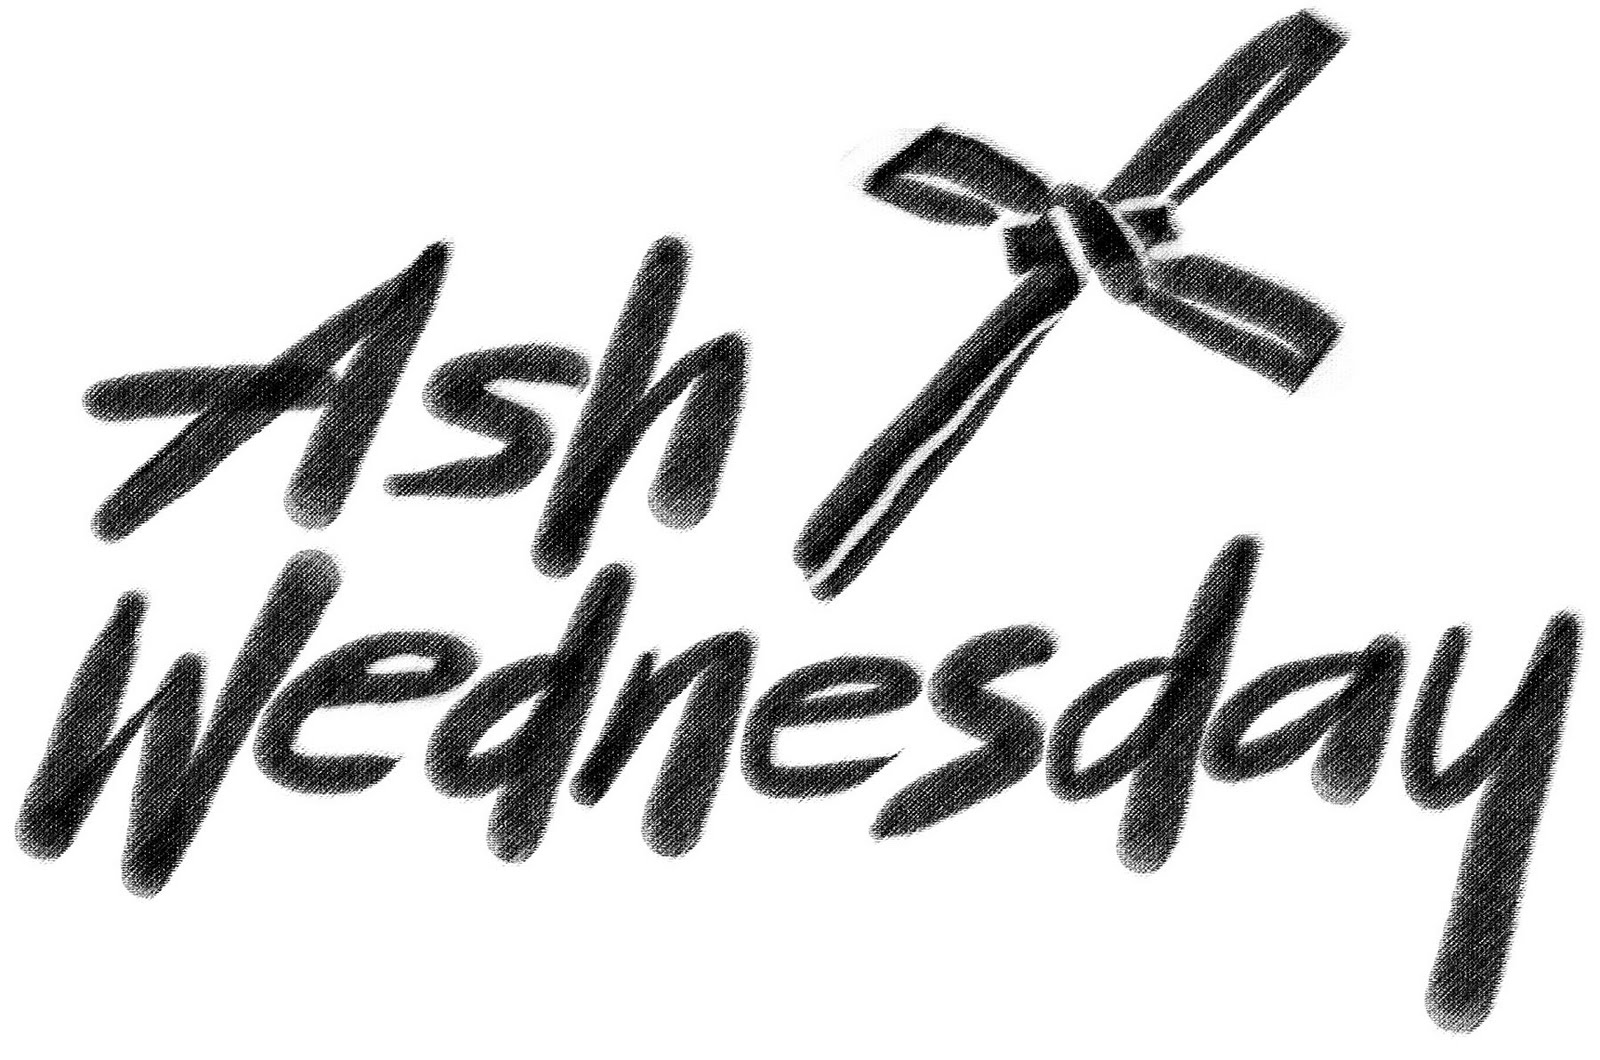 Ash wednesday 2015 clipart png black and white stock Free Ash Cliparts, Download Free Clip Art, Free Clip Art on Clipart ... png black and white stock